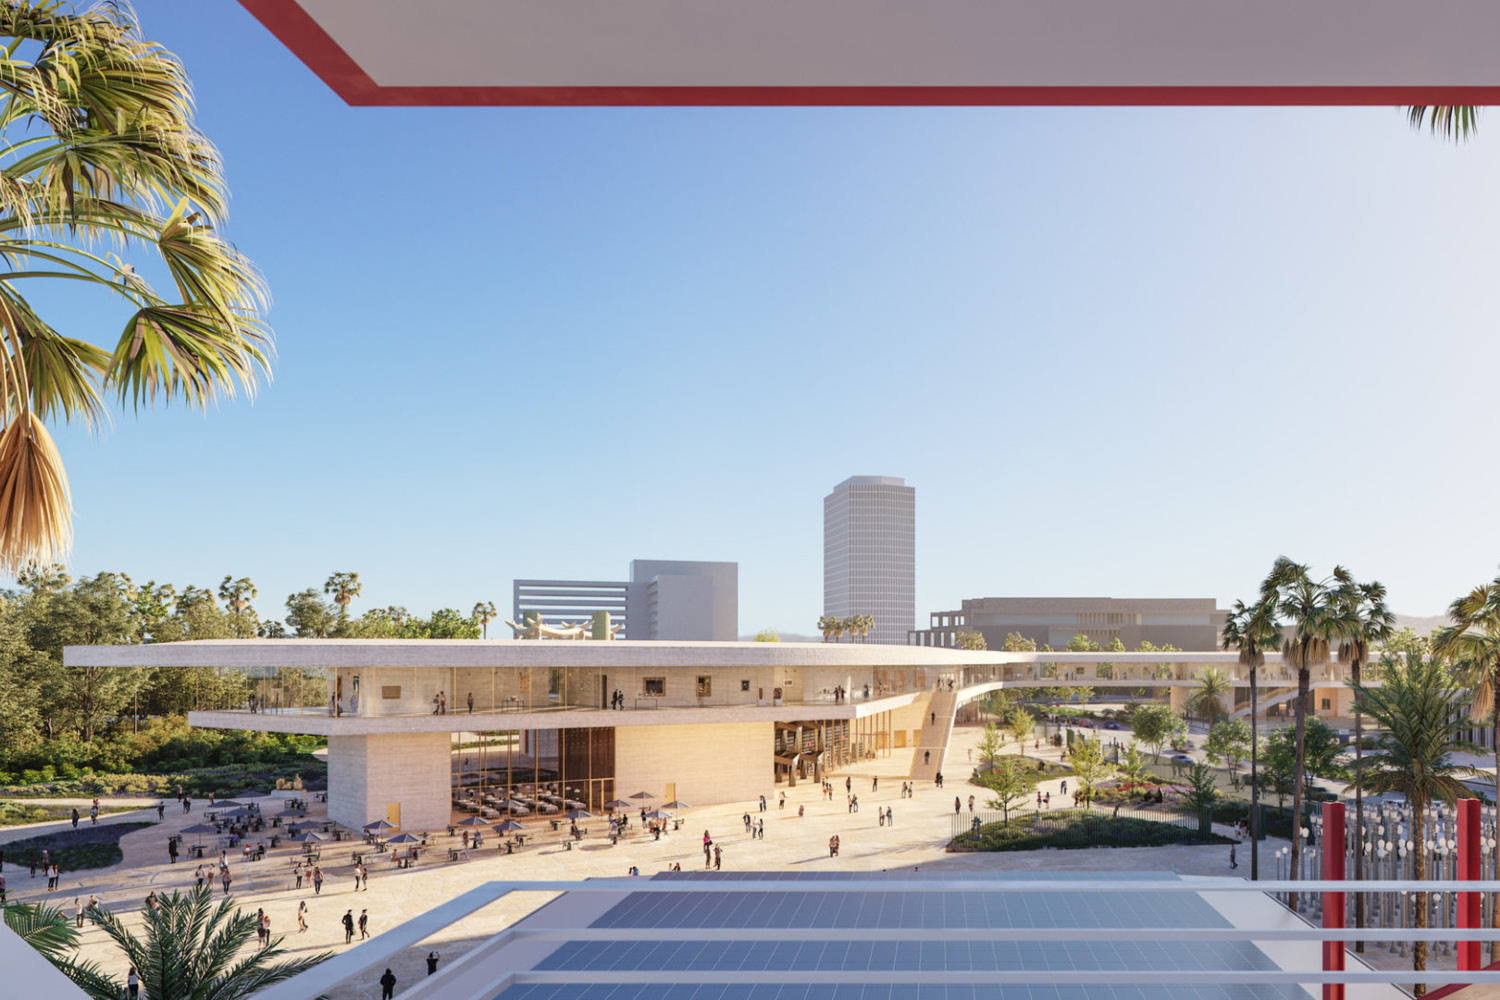 LACMA Building for the Permanent Collection